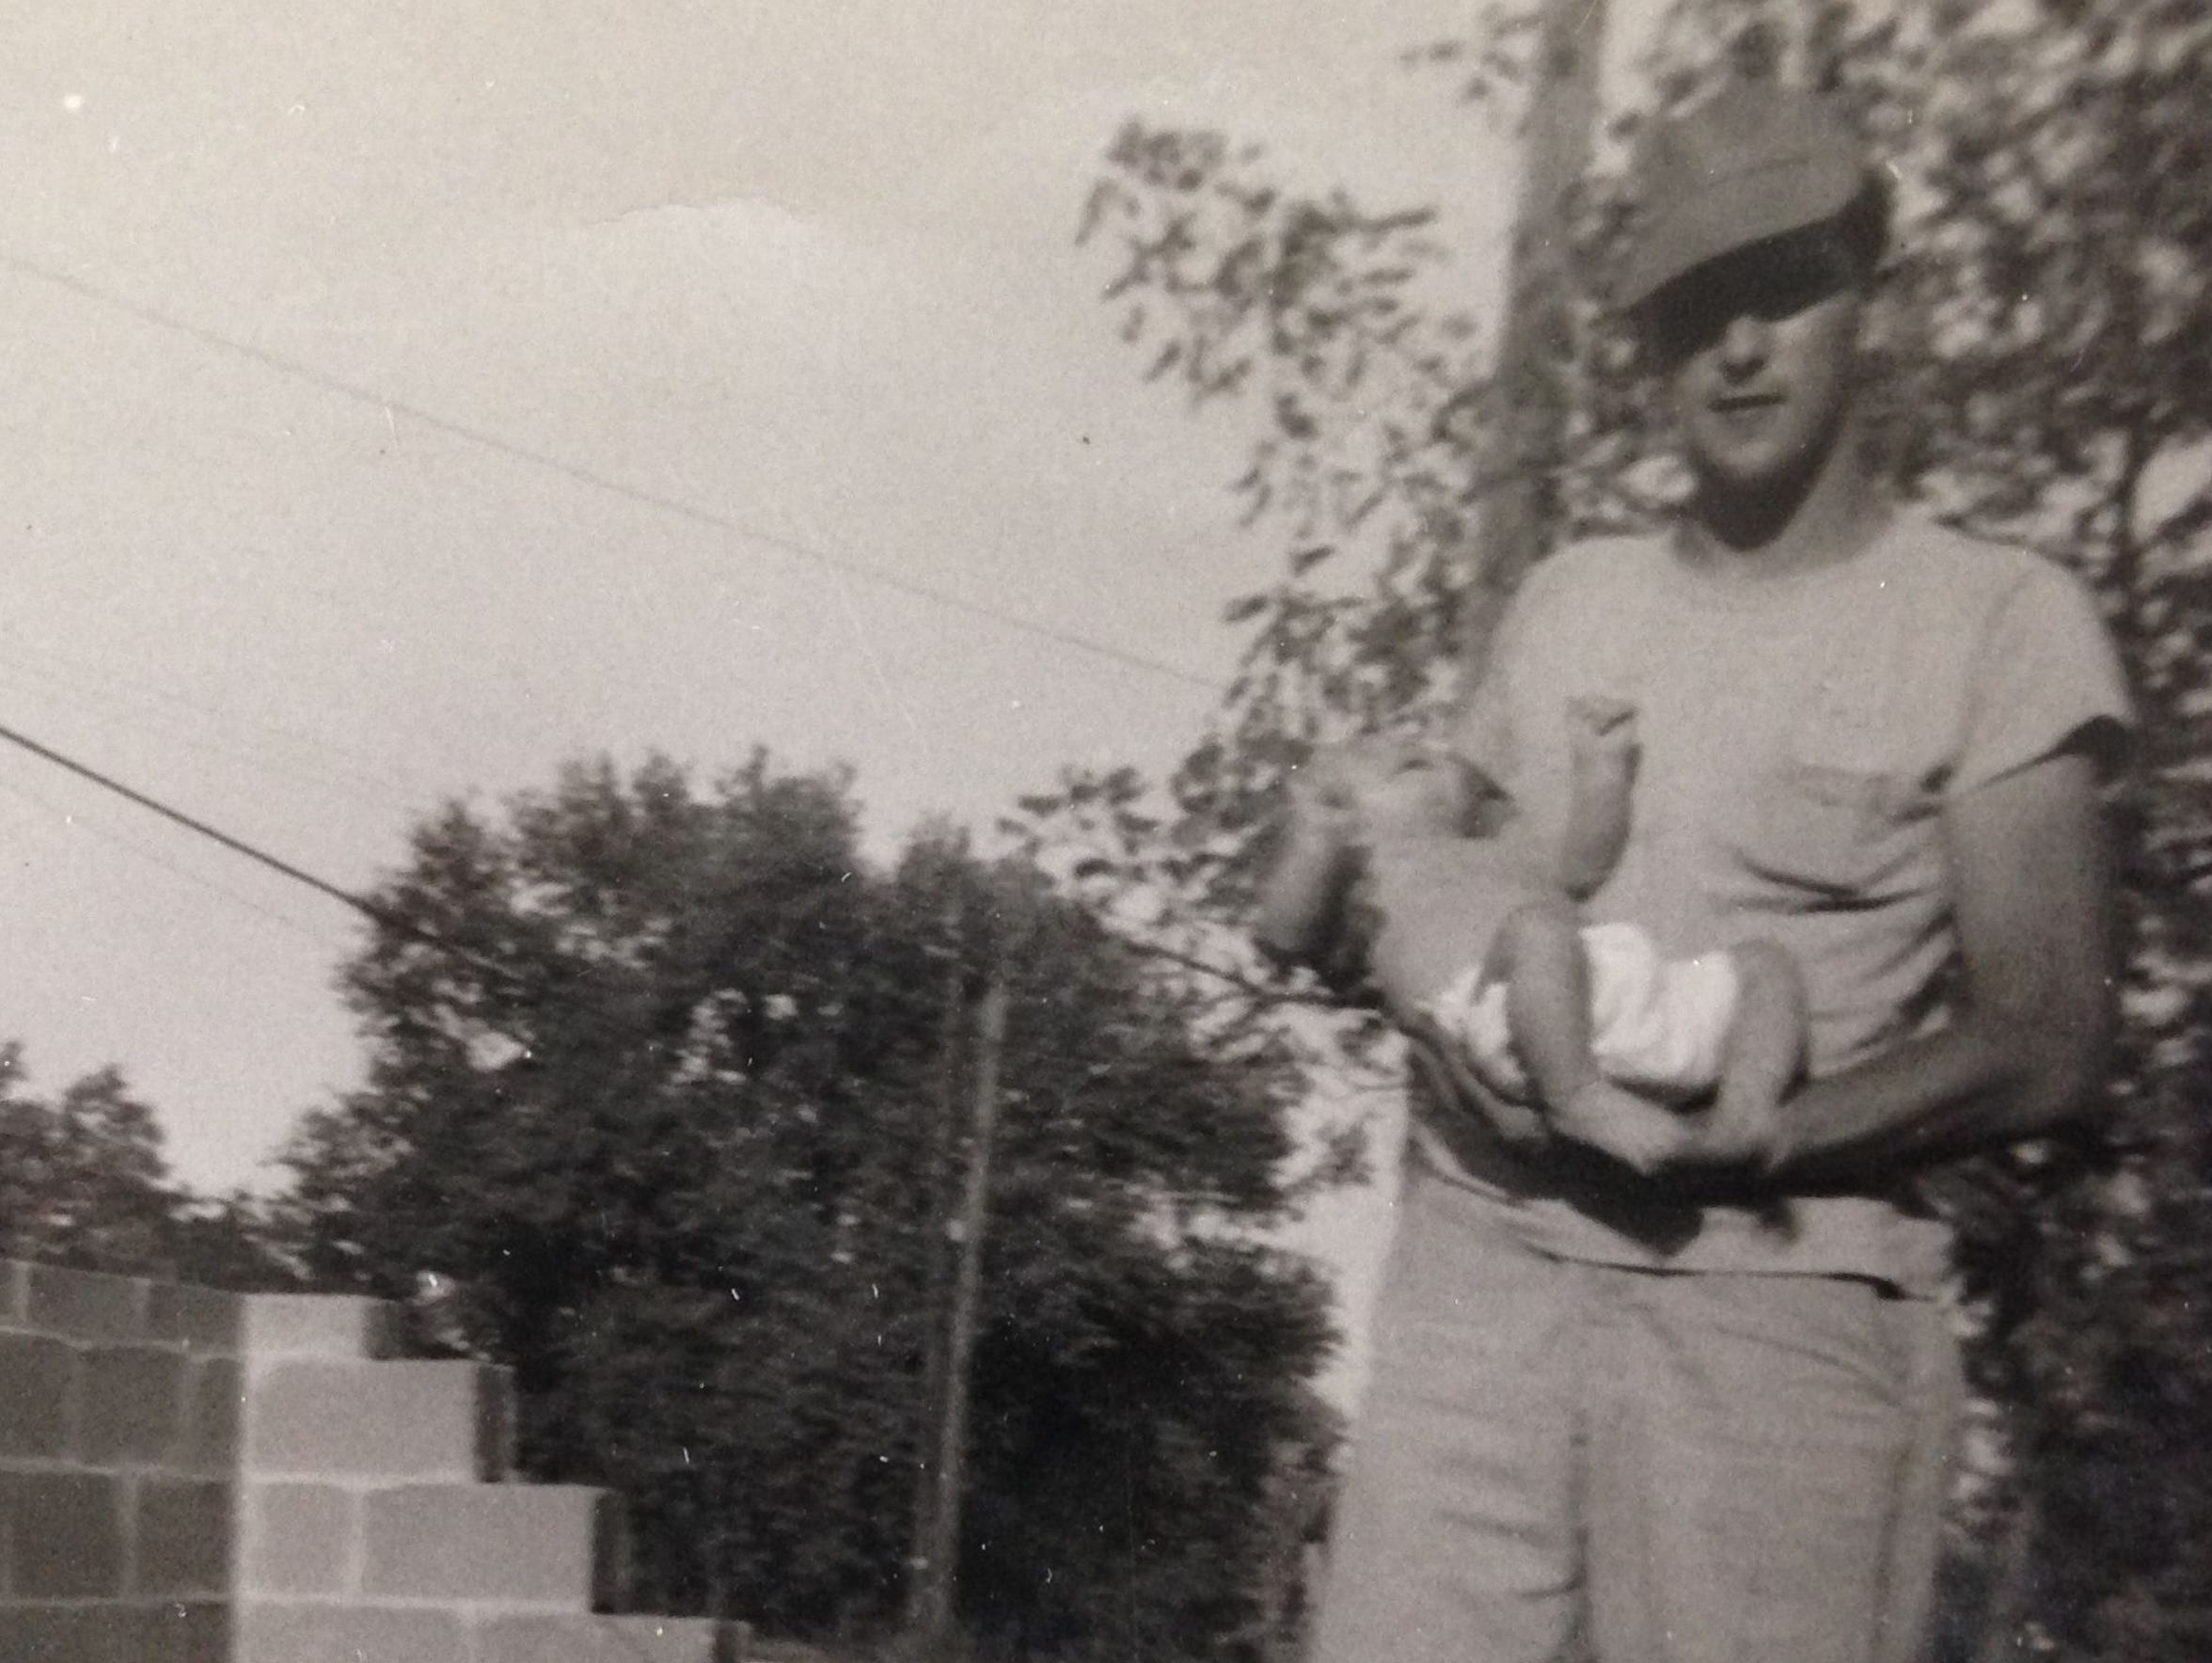 Eugene Flynt holds his baby son, Richard, at a home